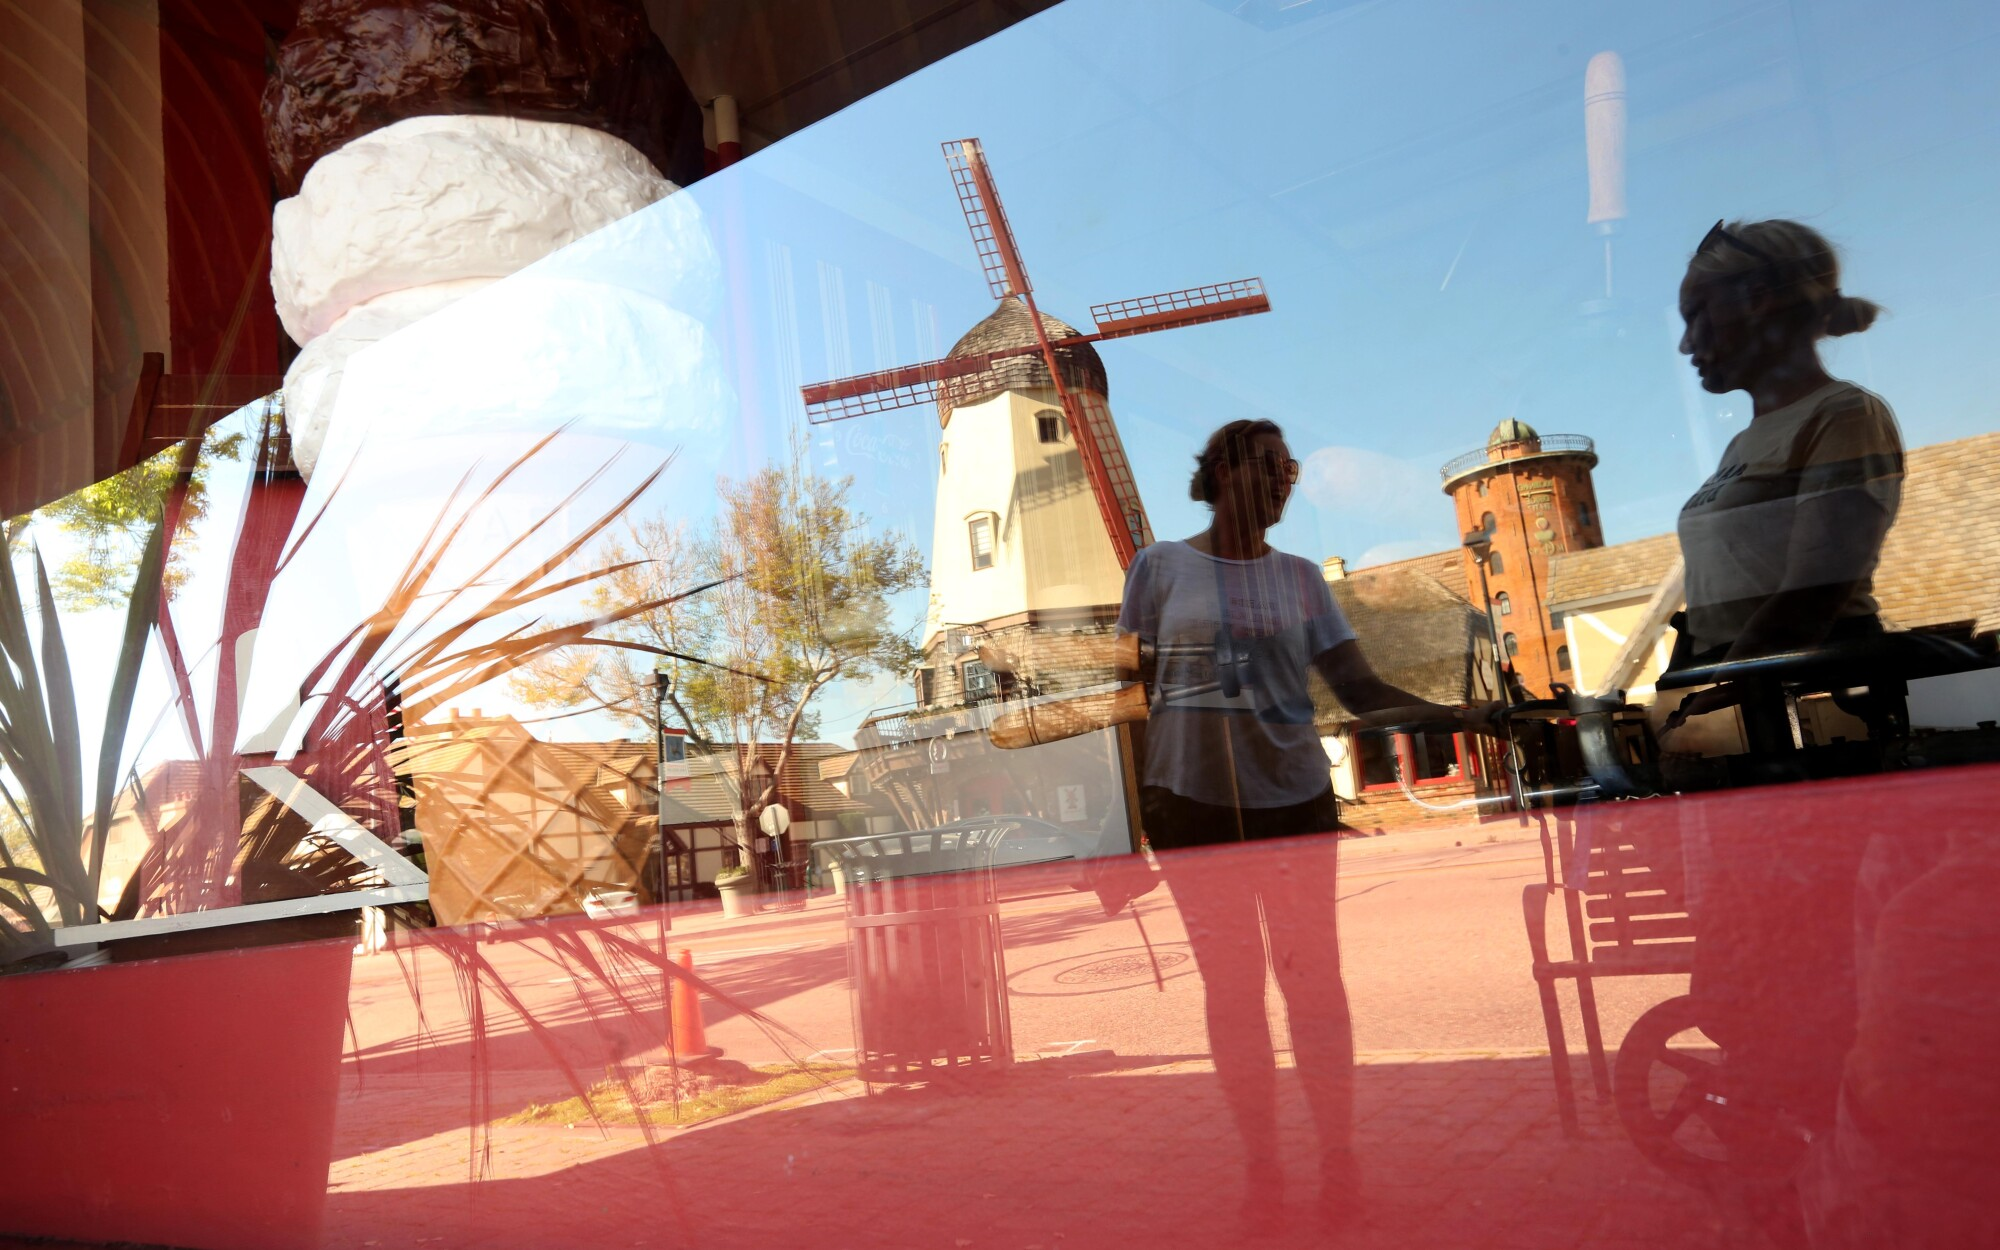 Alicja Clarke, right, and Jusyna Zimkowski talk while reflected in a storefront window along with a windmill on Alisal Road in Solvang, Calif., last week. Clarke has not been working since the Copenhagen House had to close due to the coronavirus pandemic.